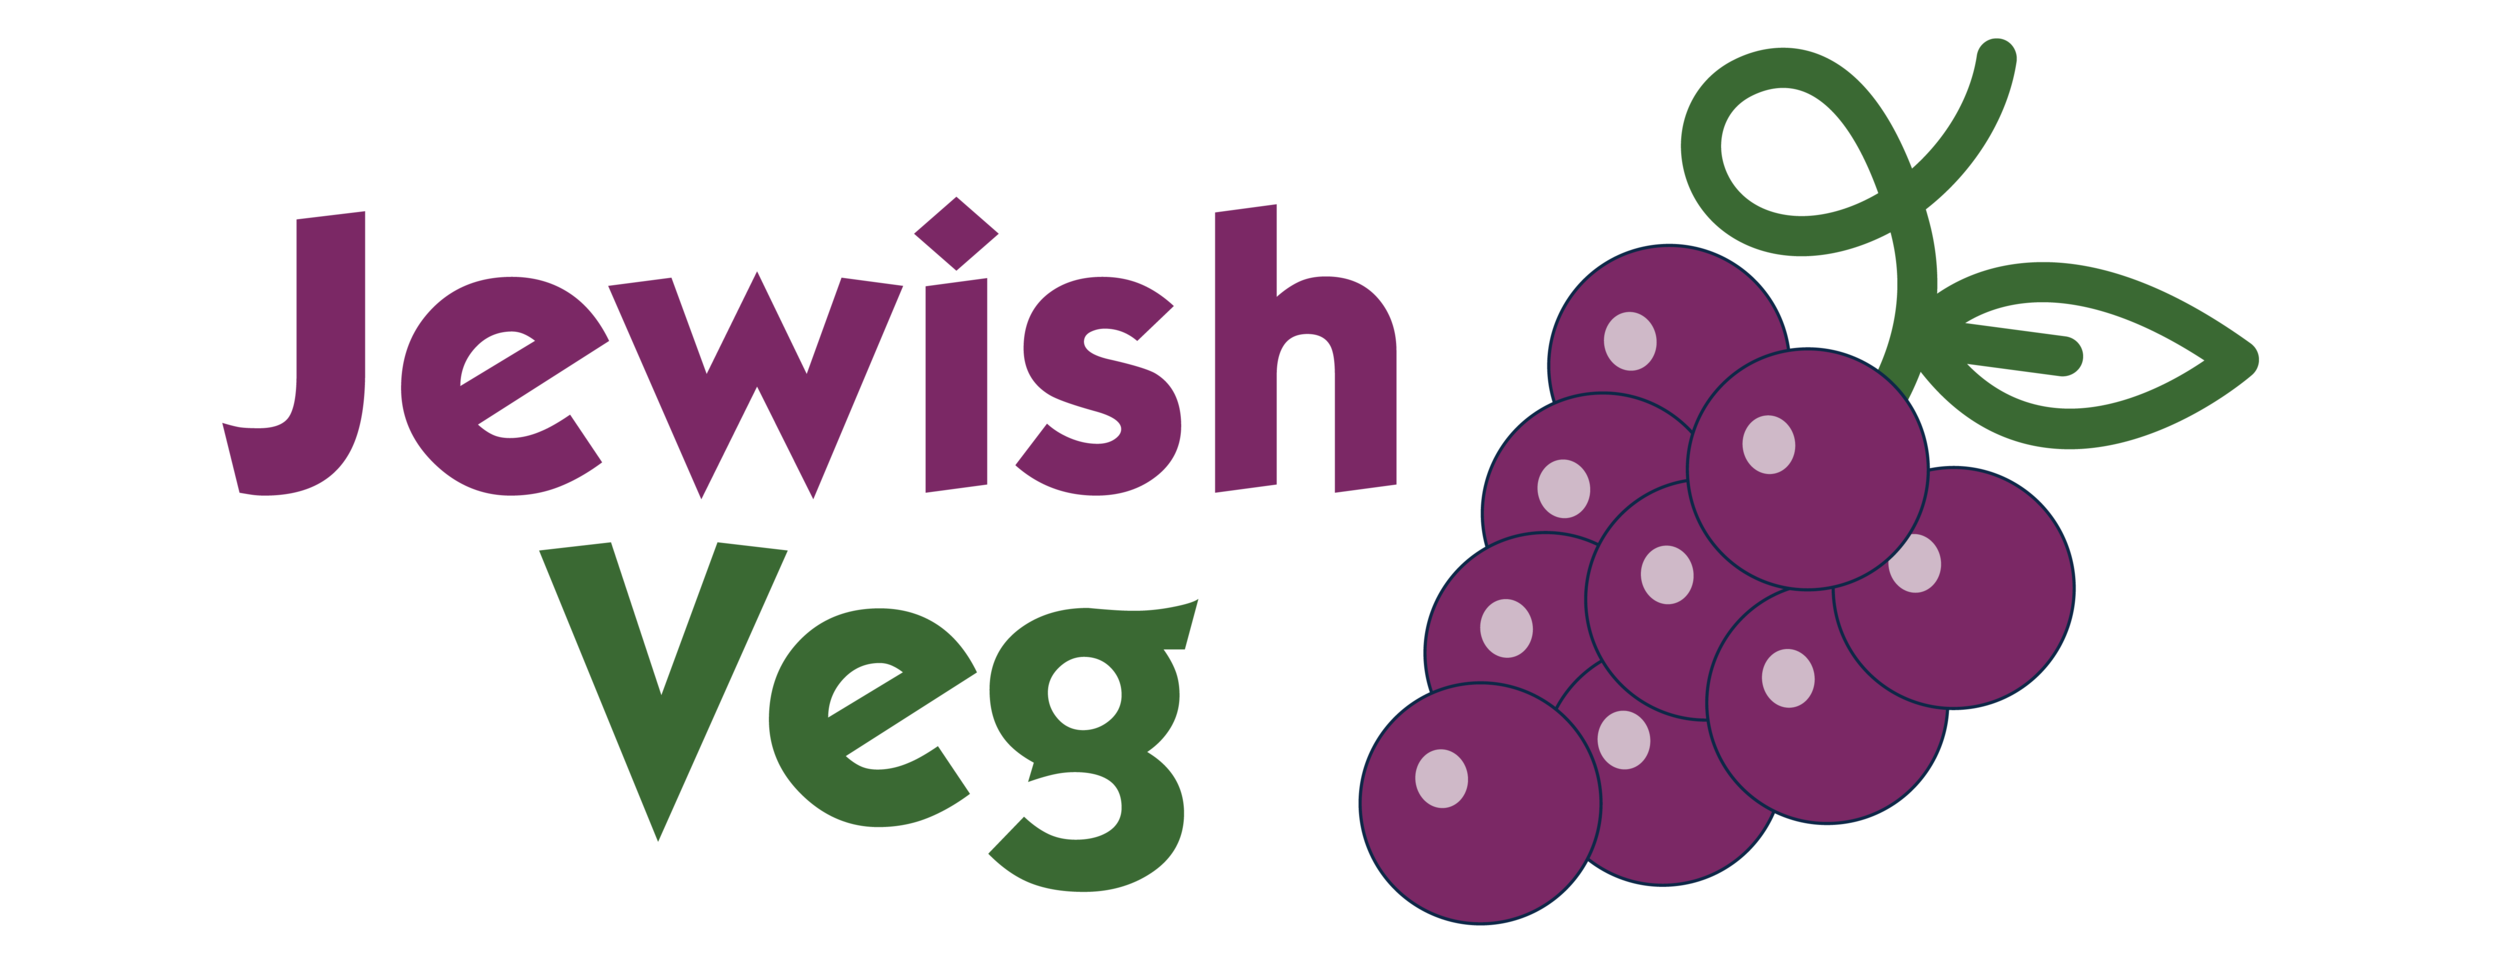 We inspire and assist Jews to embrace plant-based diets as an expression of Jewish values.  A    letter of support    -  https://www.jewishveg.org/Fur-Free-Minneapolis